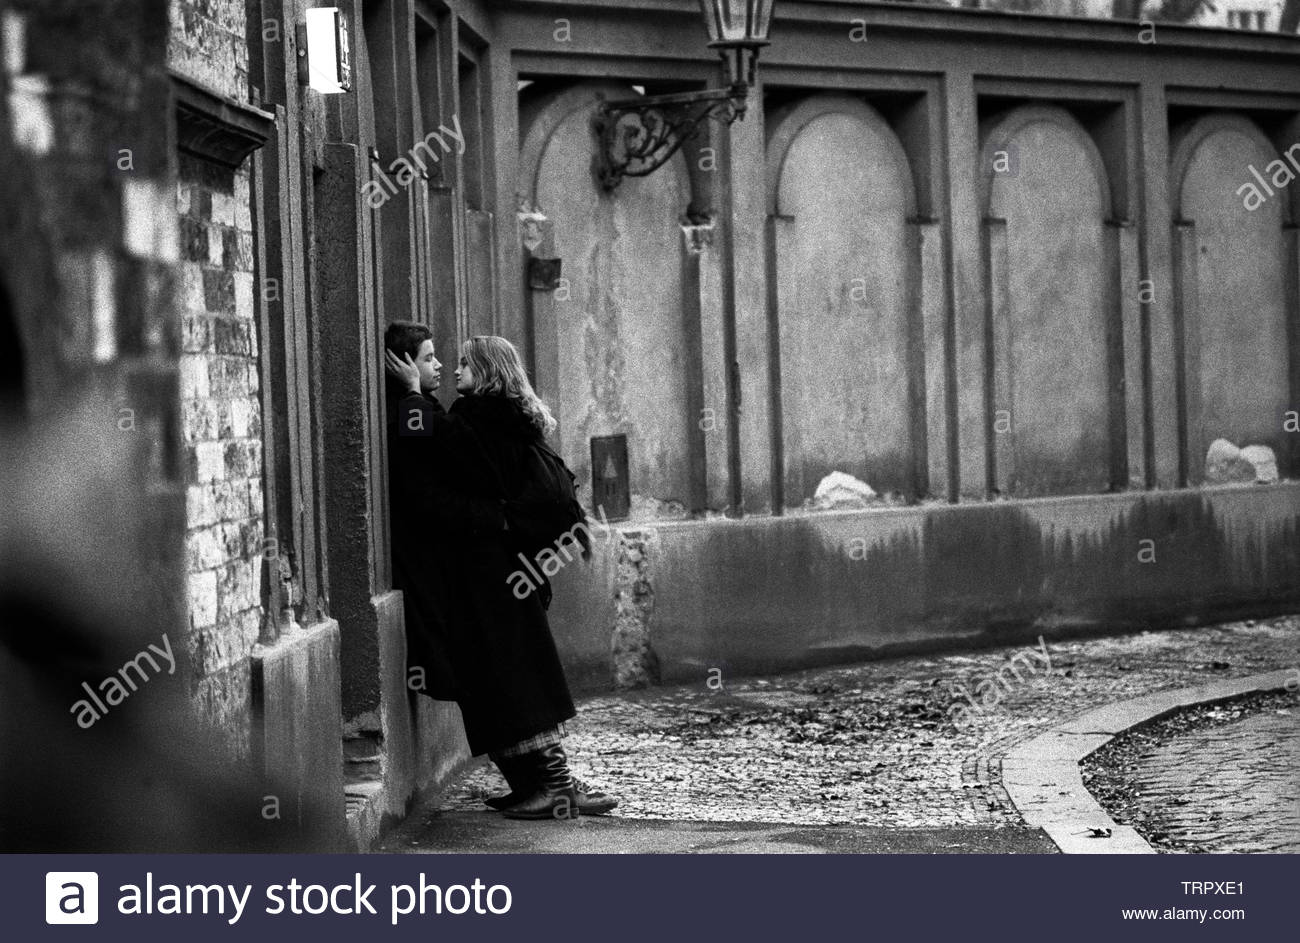 Czechoslovakia, Prague,1989 during the Velvet Revolution, the fall of communism in Eastern Europe. Lovers outside the Jewish Cemetery in U Stareho Hrbitova. COPYRIGHT PHOTOGRAPH BY BRIAN HARRIS  © 07808-579804 Stock Photo